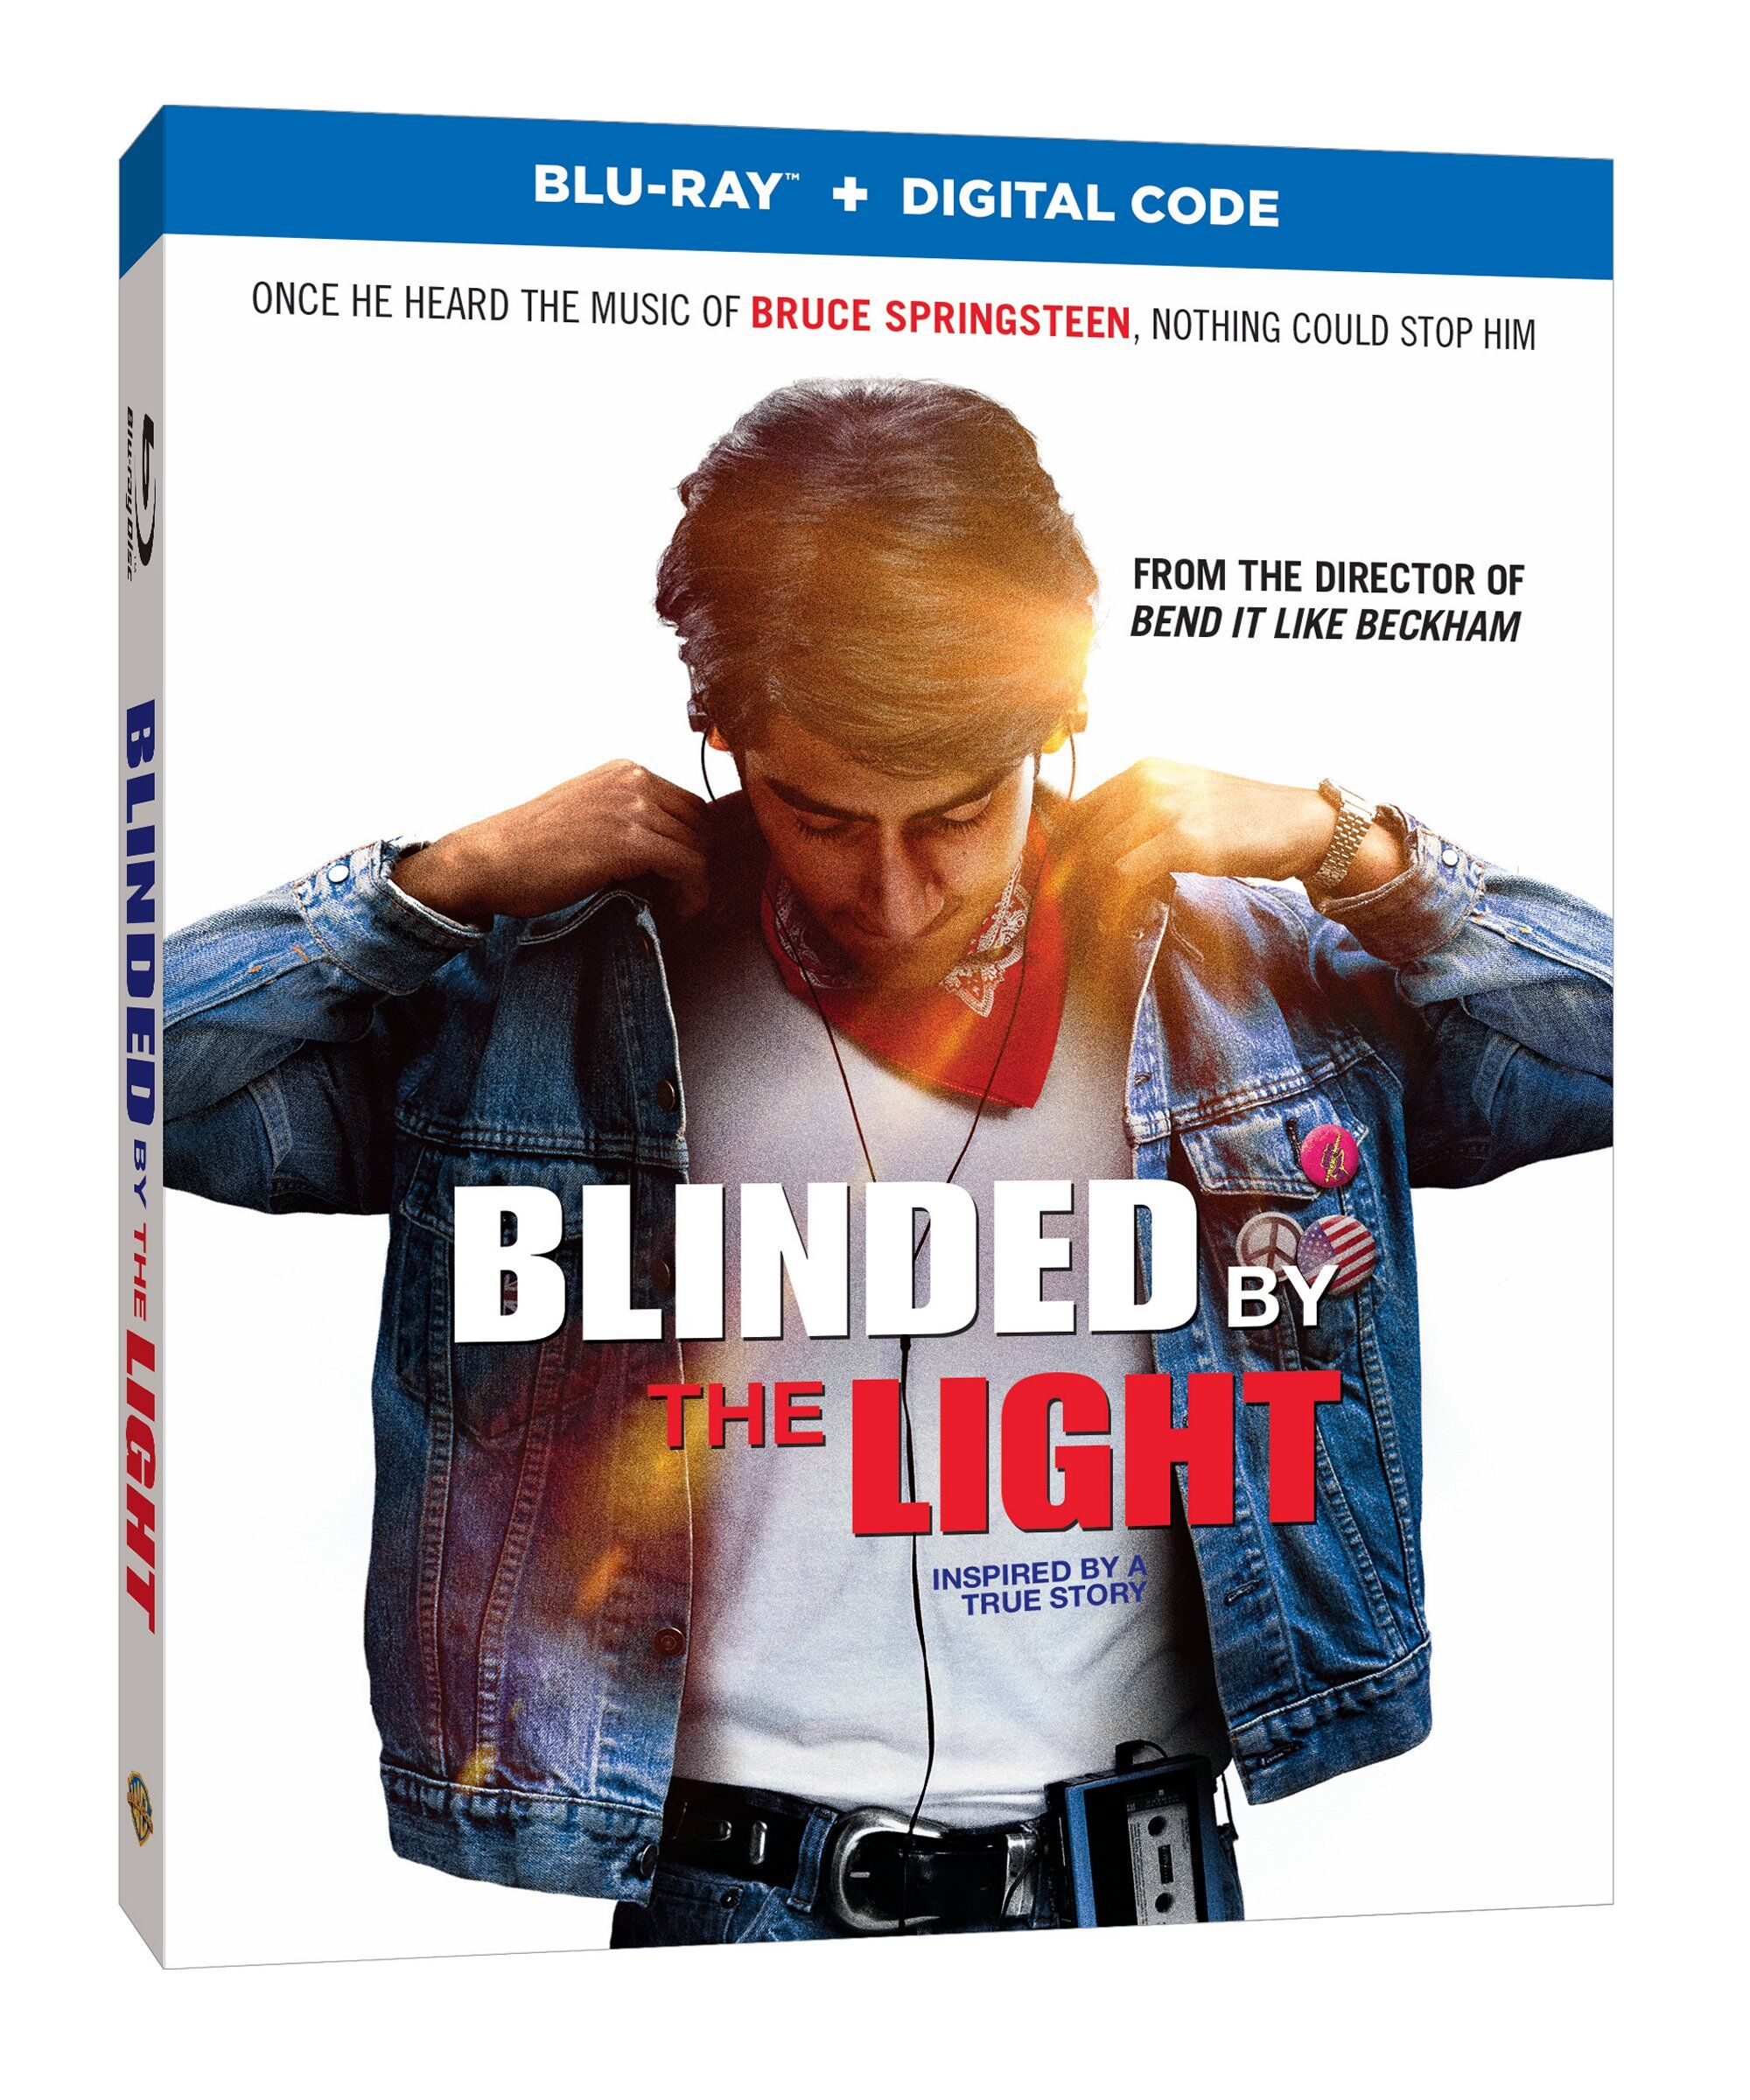 Blinded By The Light 4K Blu-ray Review